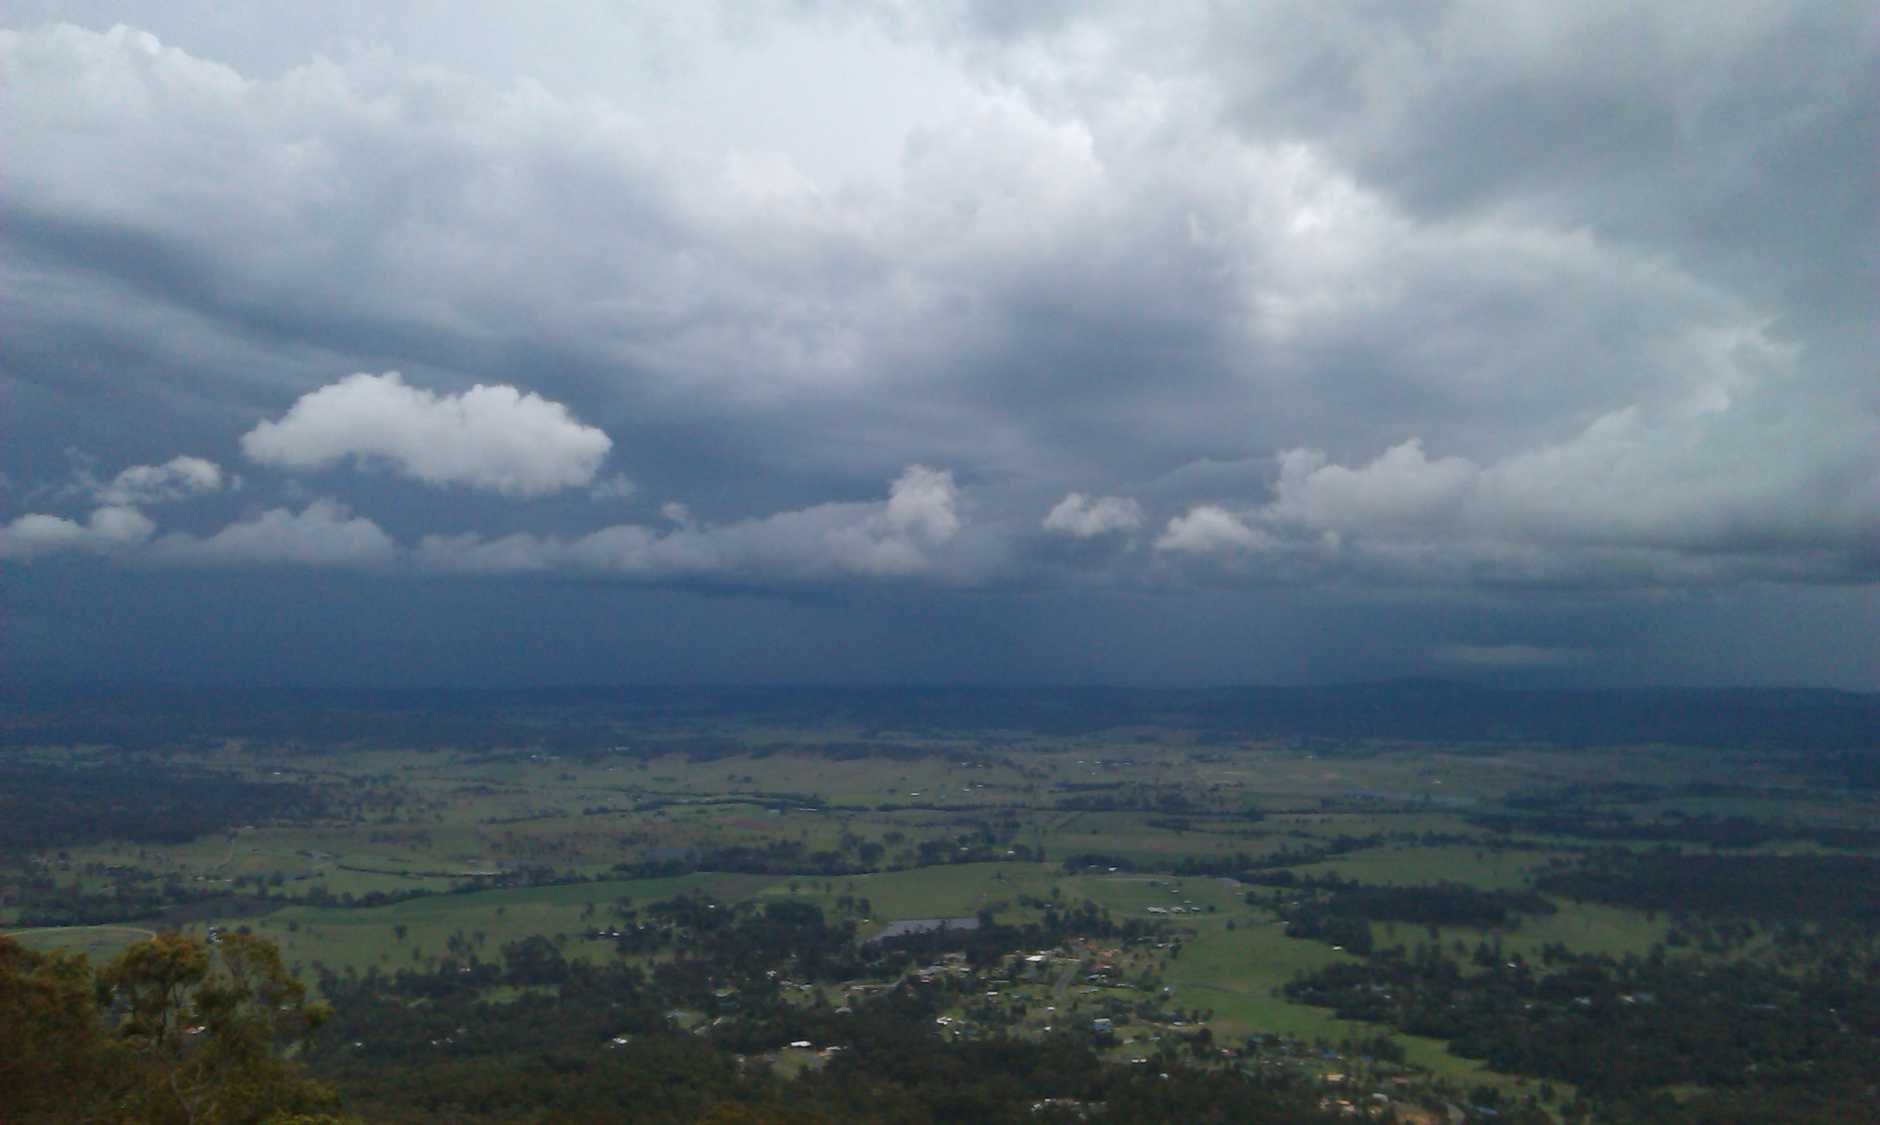 Watching a storm from Mt Tamborine  - User Contributed